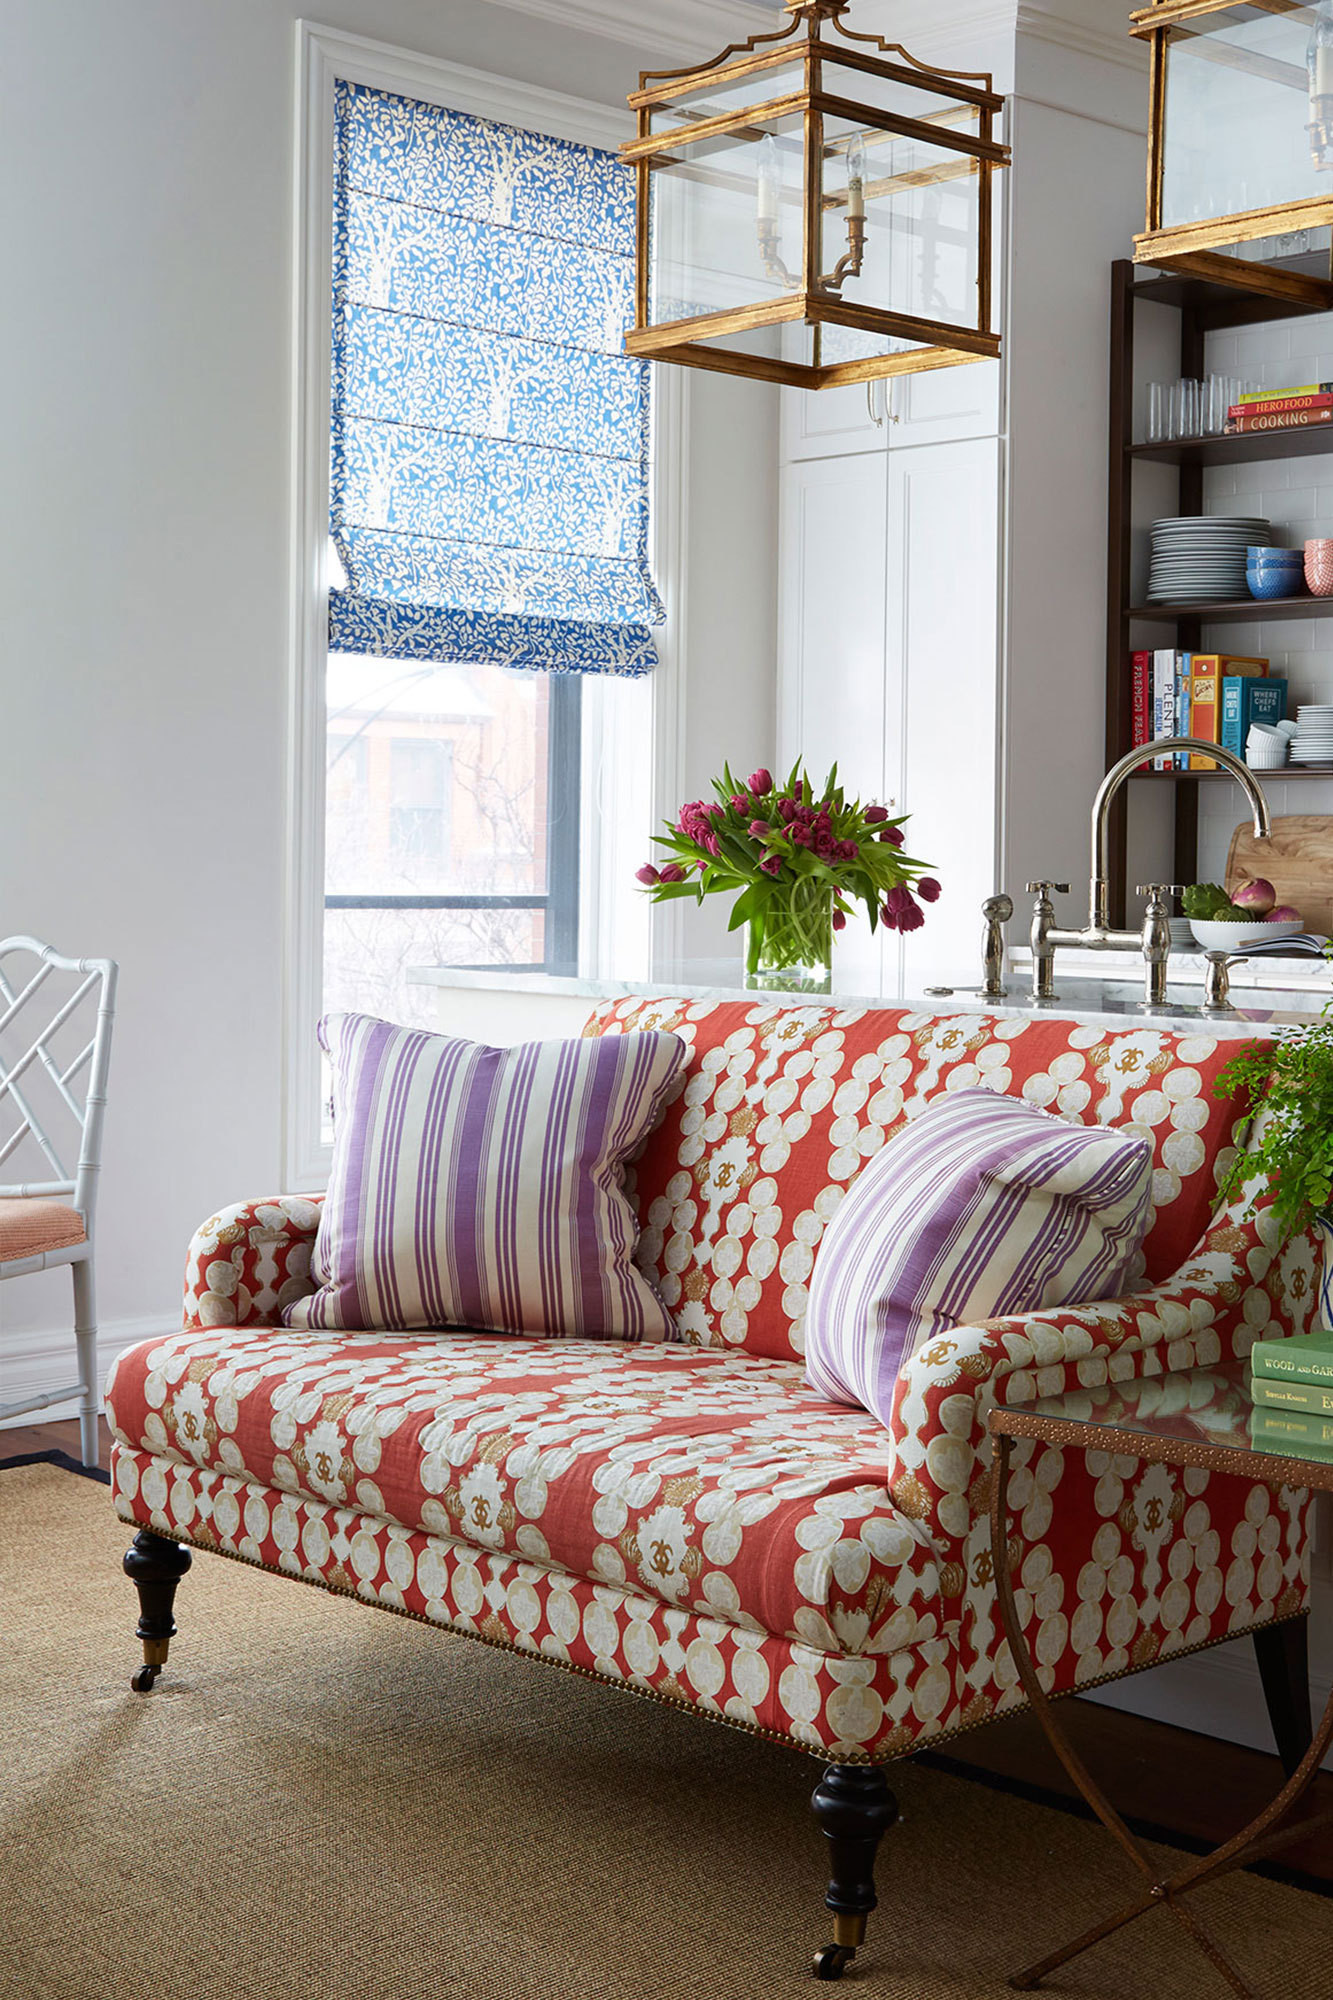 Mitchell Gold + Bob Williams's Odette Sofette pops thanks to Raoul Textiles's Miramar fabric in persimmon.